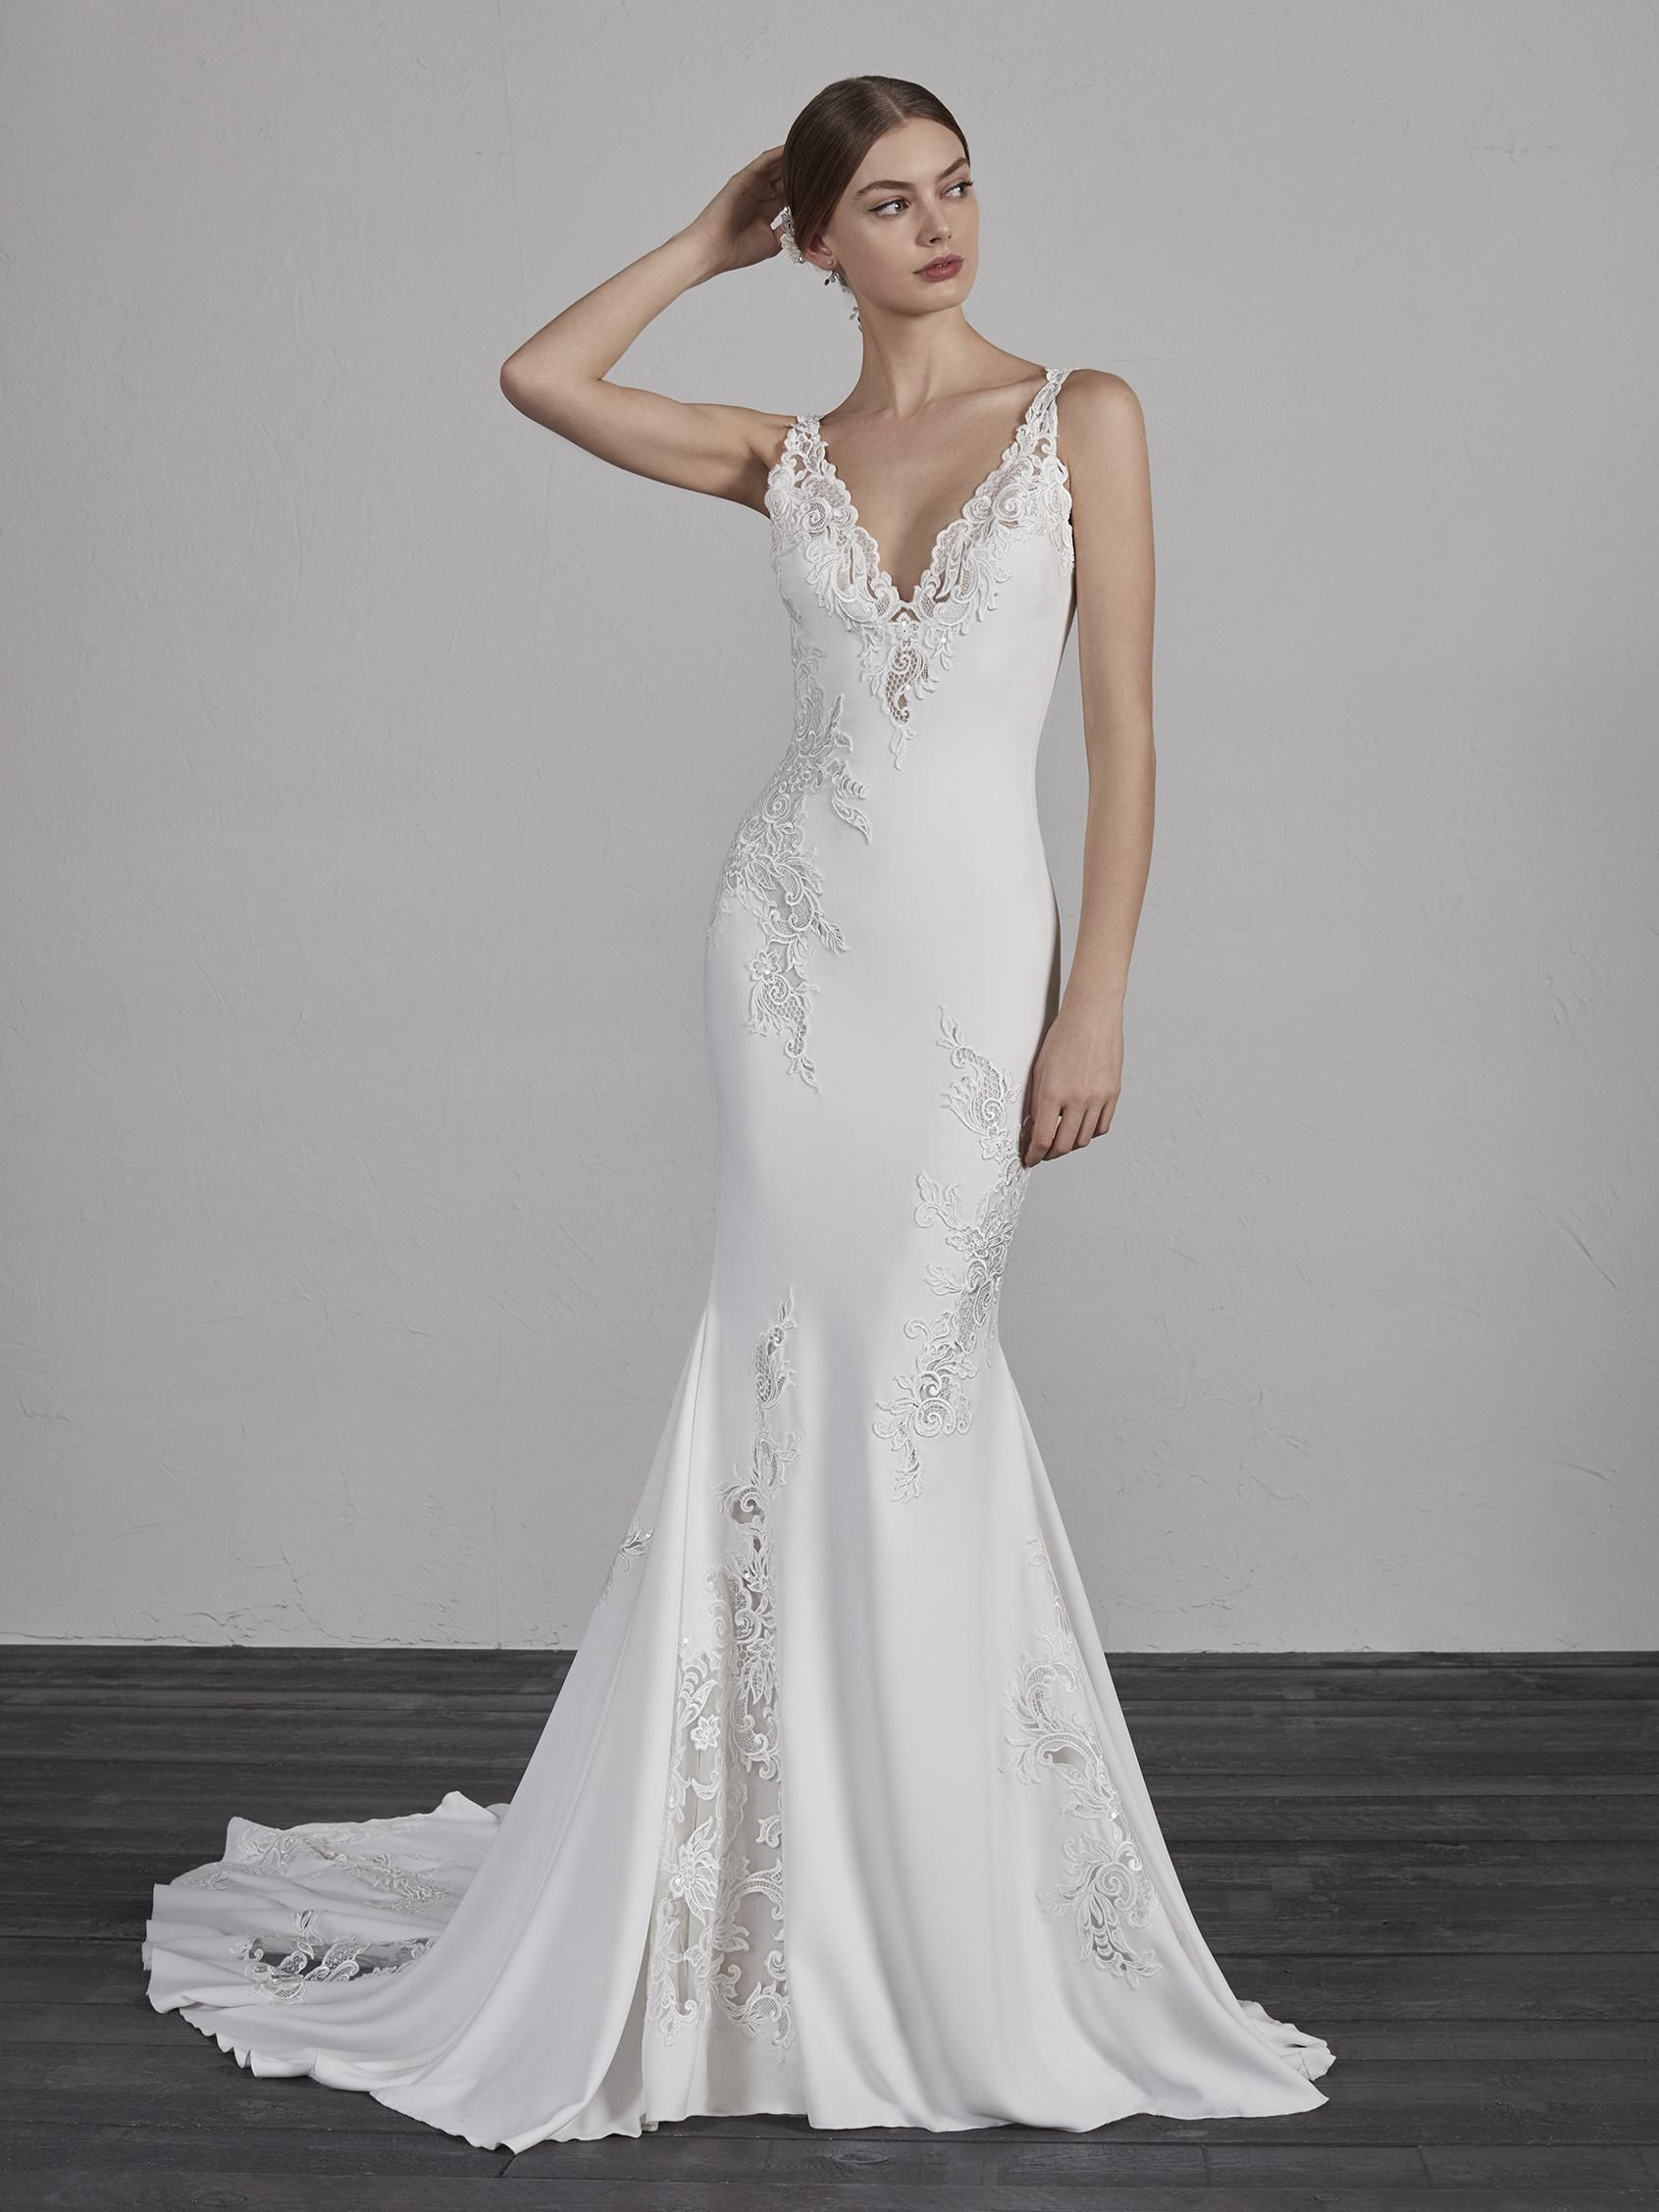 Lace wedding dress for plus size january 2019 The crepe crafted with threadembroidered appliqués and beading